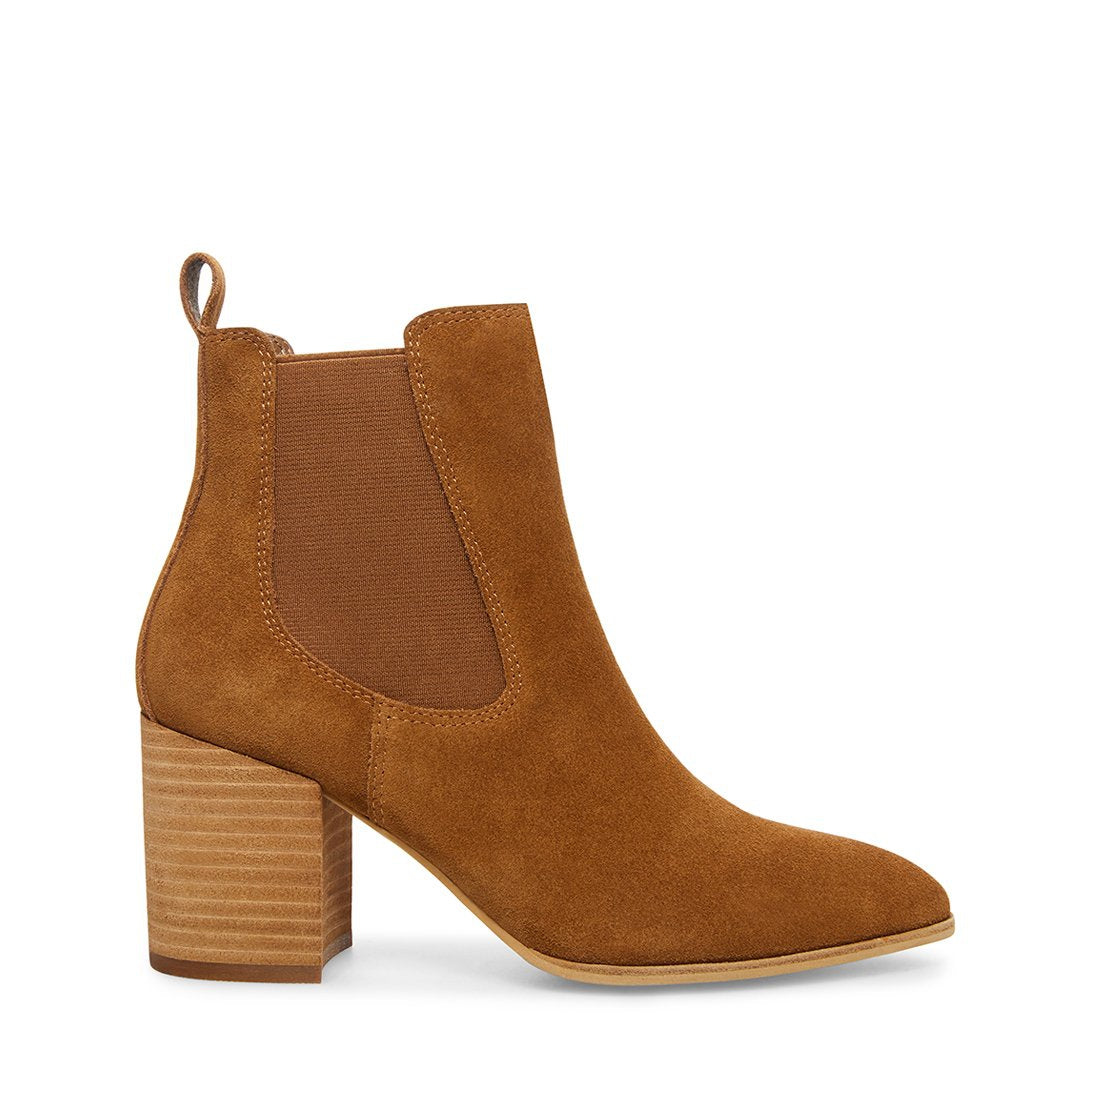 00ca080254e Booties, Ankle Boots & Ankle Booties | Steve Madden | Free Shipping